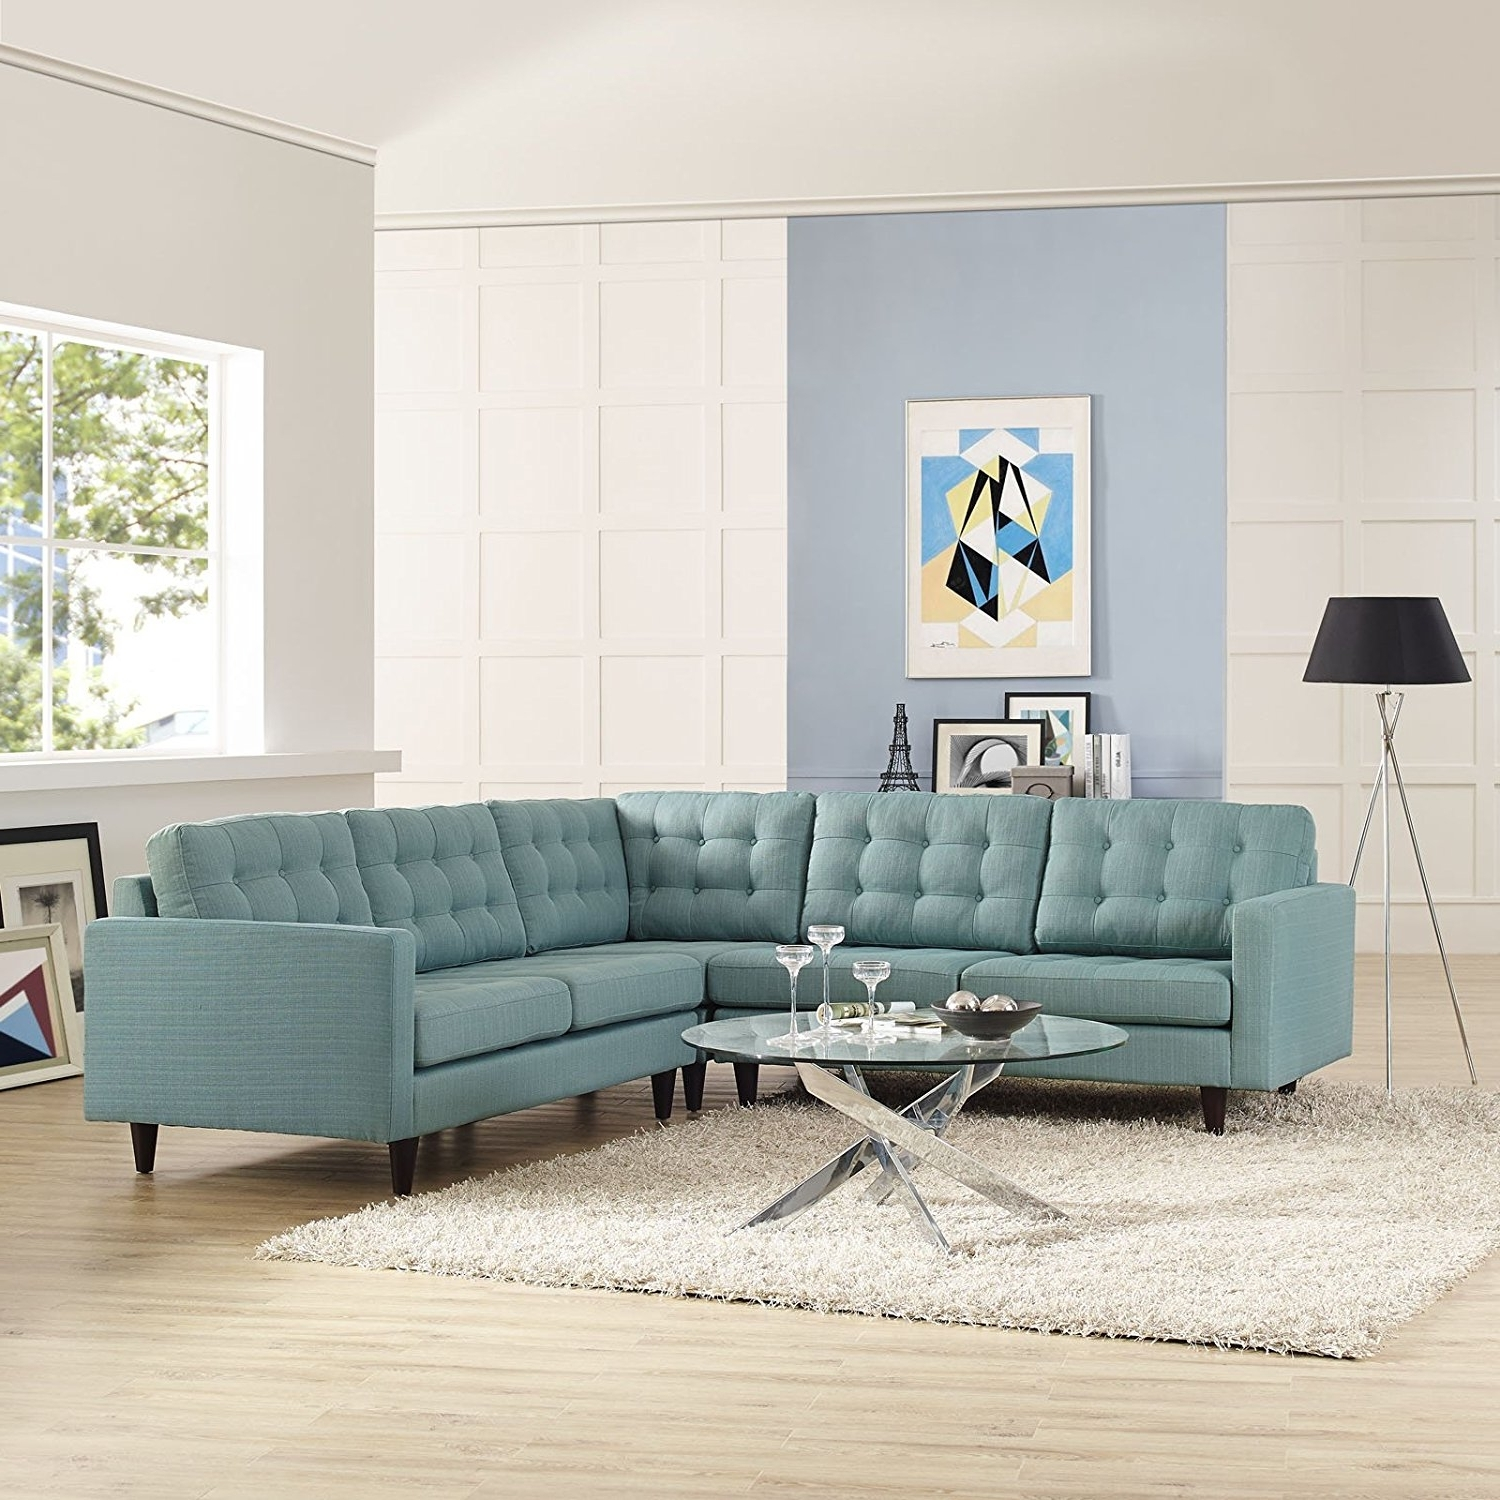 Modway Furniture Empress Modern Light Blue Fabric Sectional With Regard To Favorite Blue Sectional Sofas (View 14 of 20)